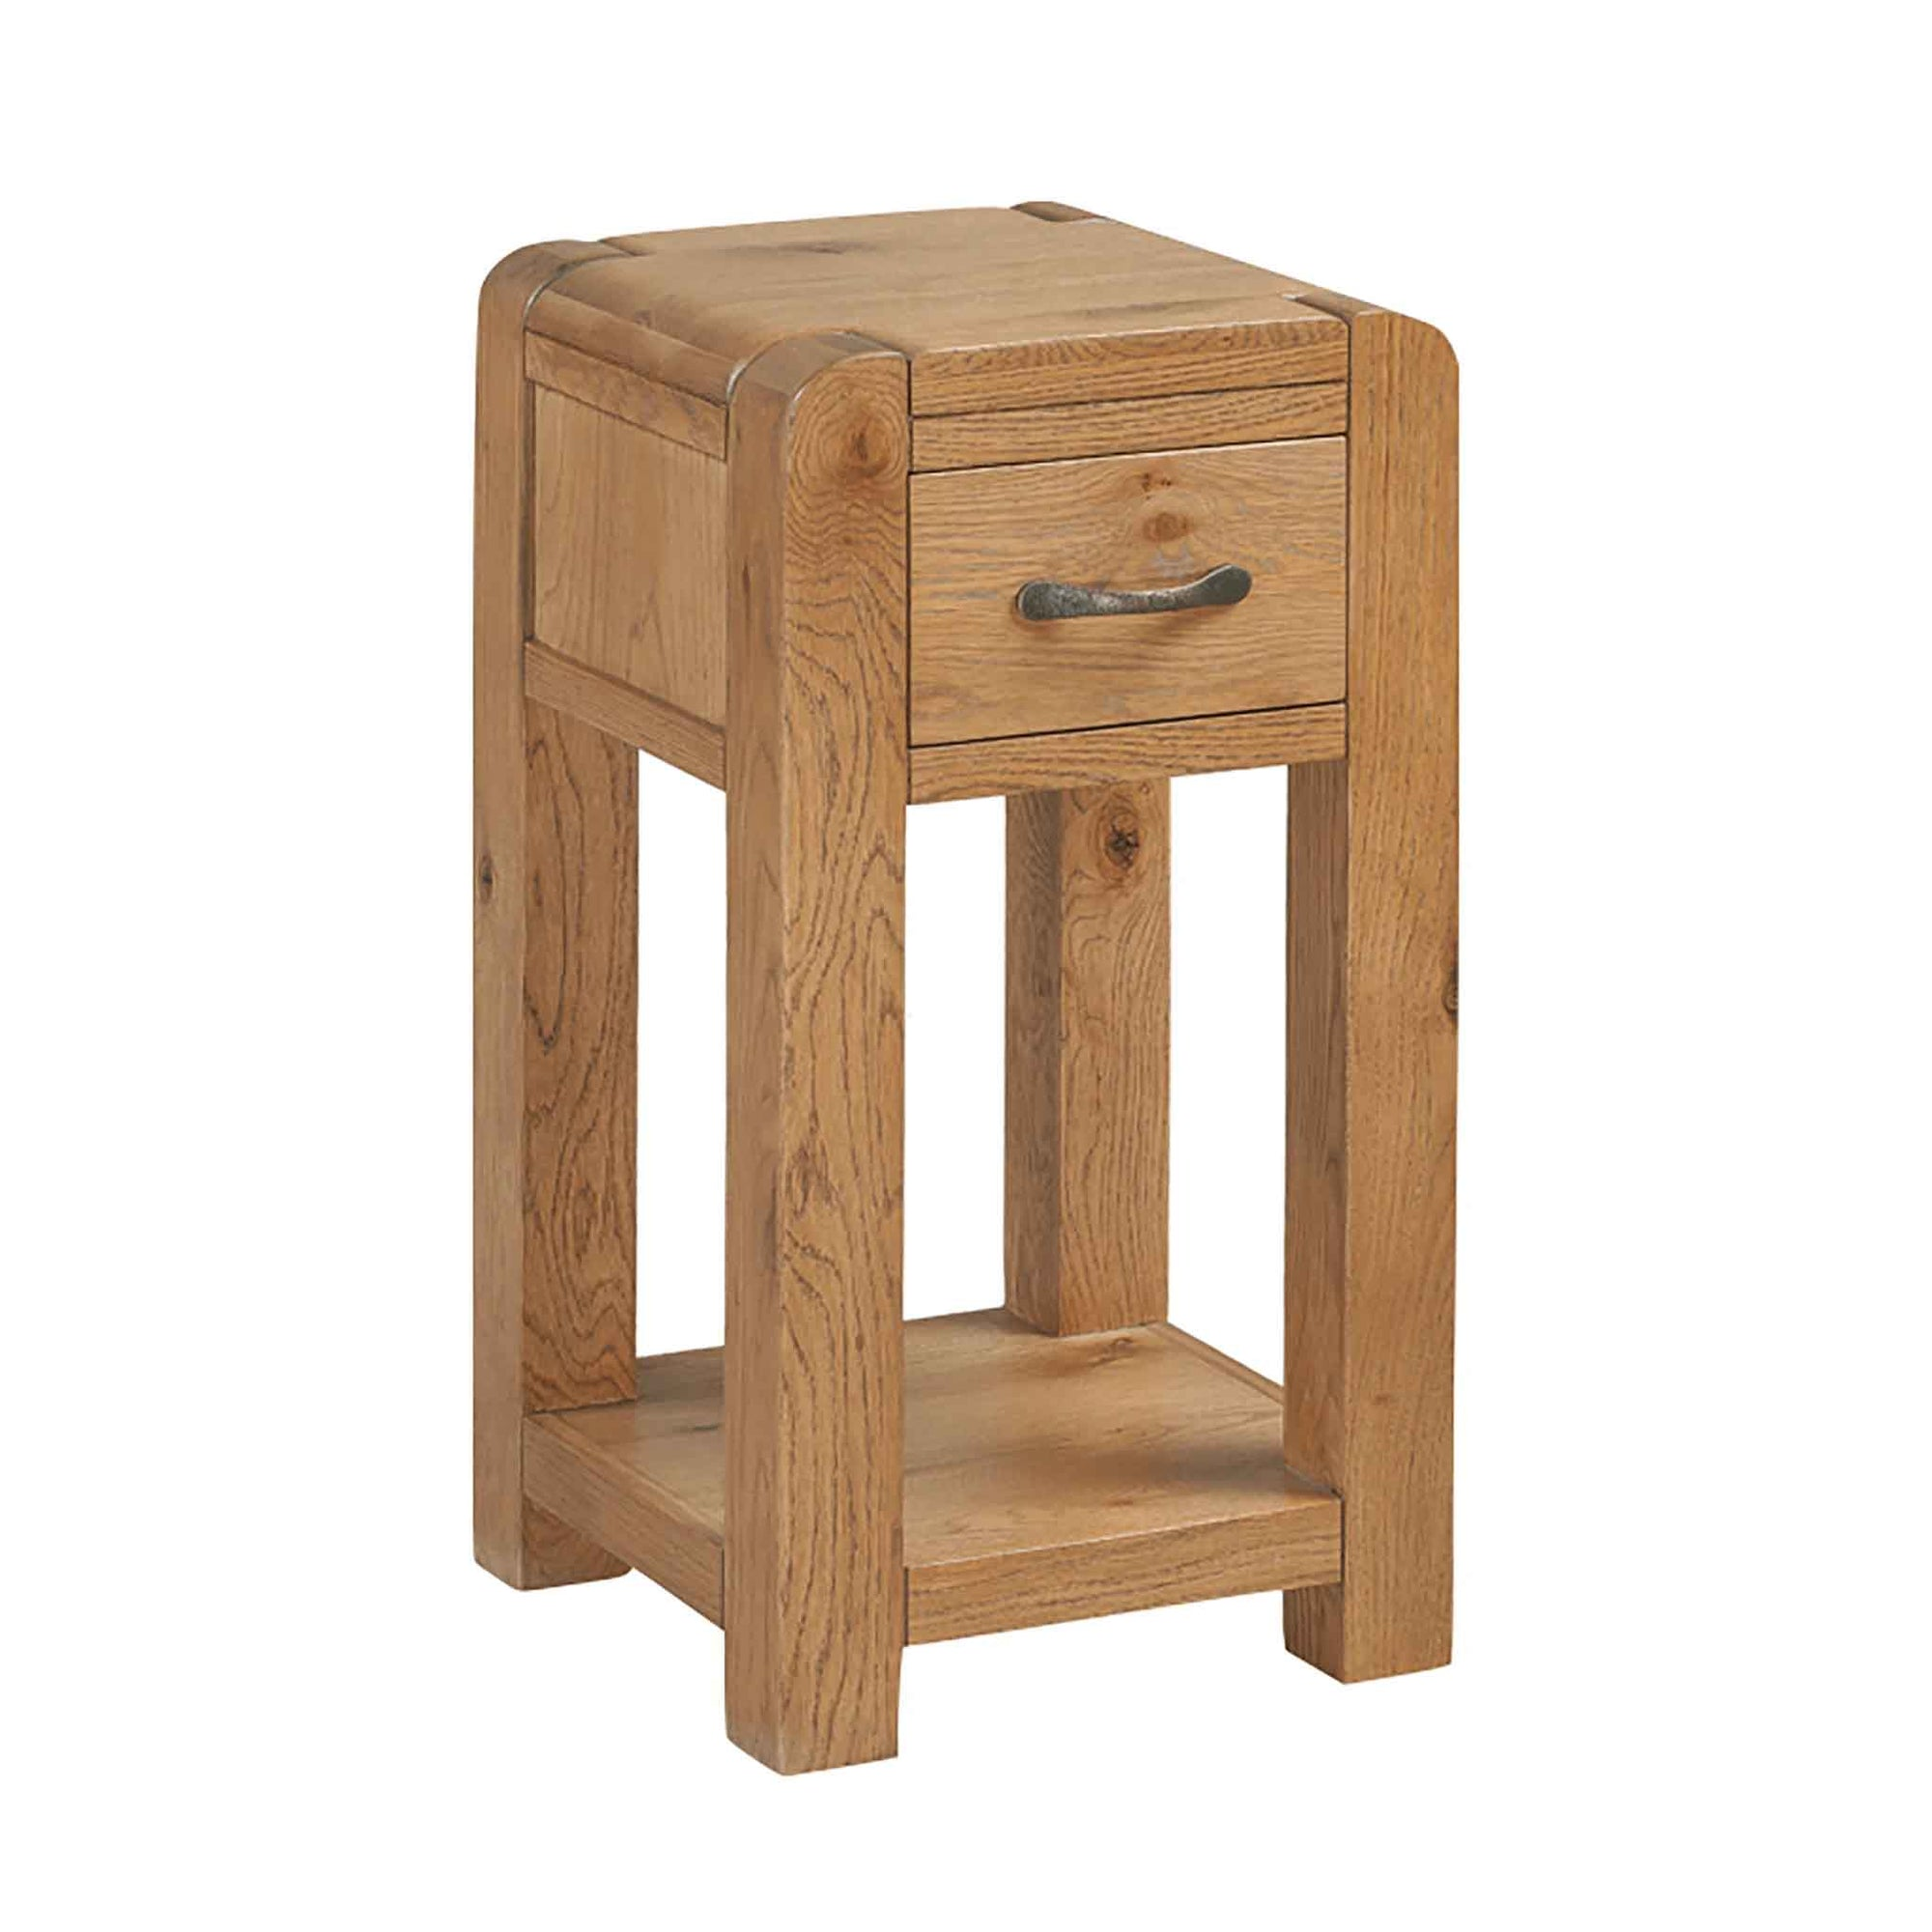 The Capri Oak Chunky Rustic Wooden Telephone Table with Drawer from Roseland Furniture